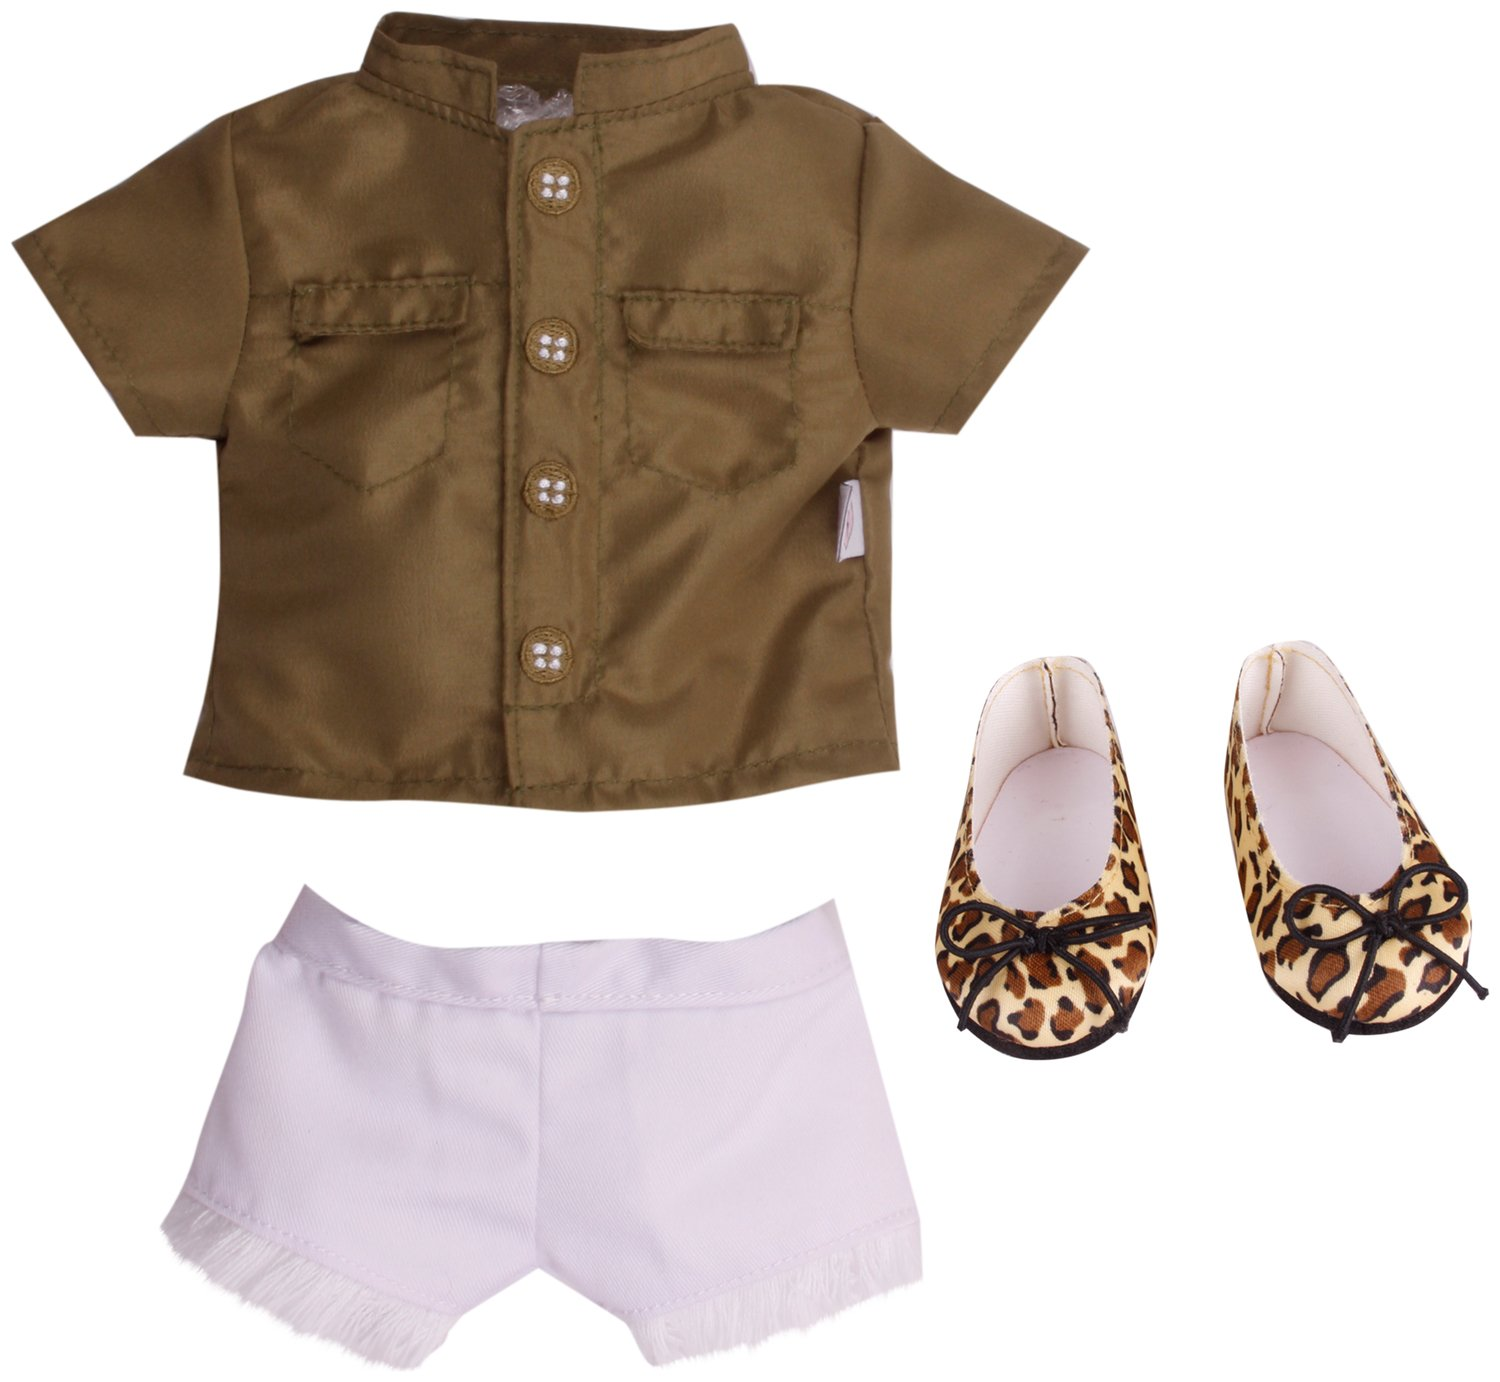 Chad Valley Designafriend Safari Adventure Outfit